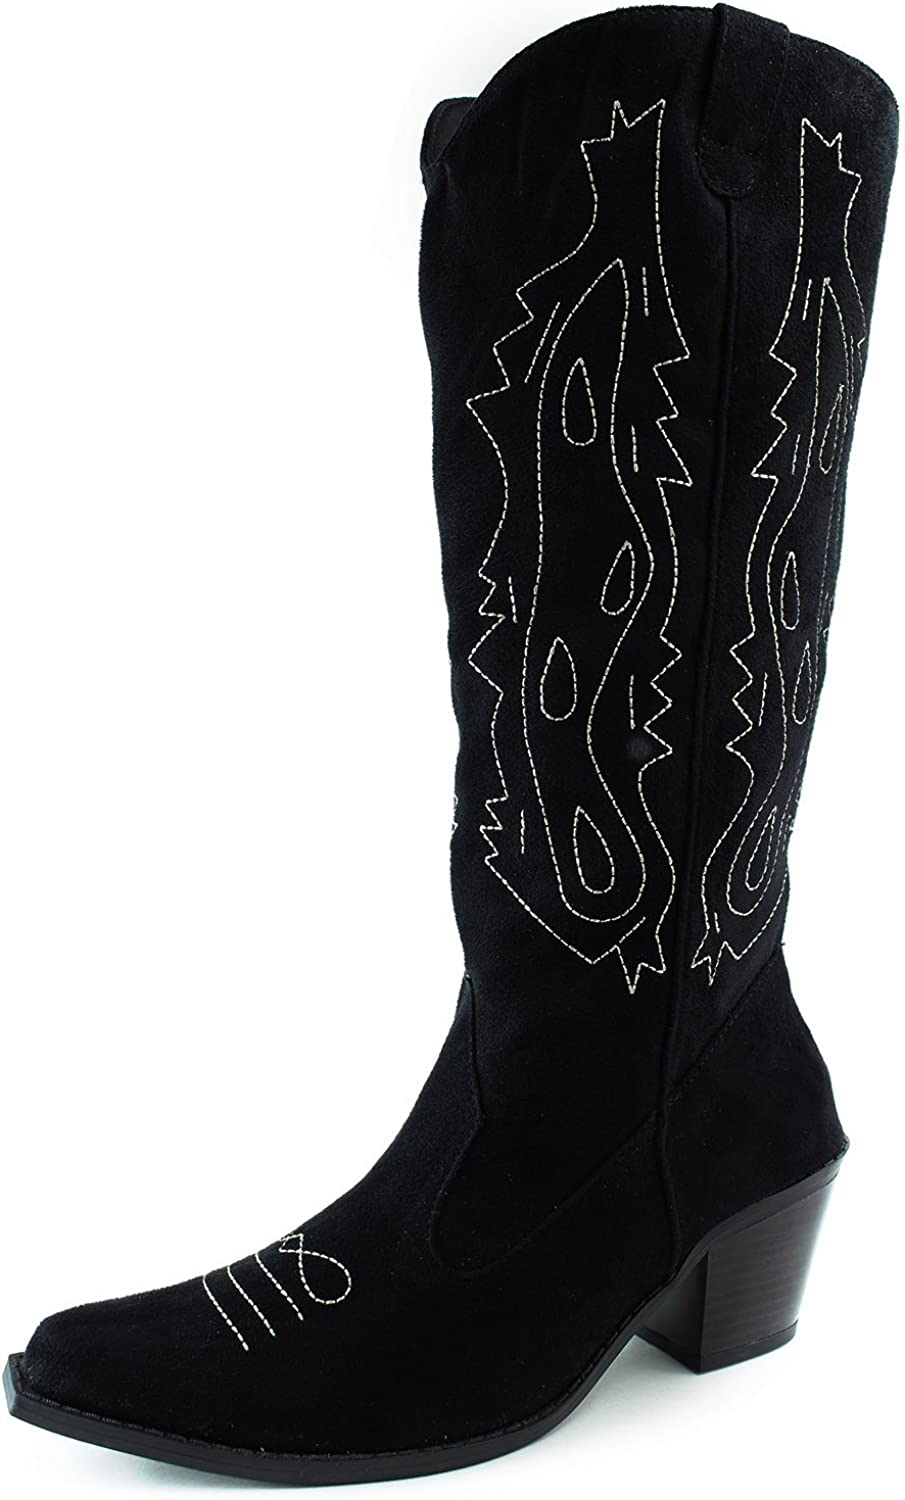 Splash Knee High Cowboy Fashion Boots Kitten Thick Heel color